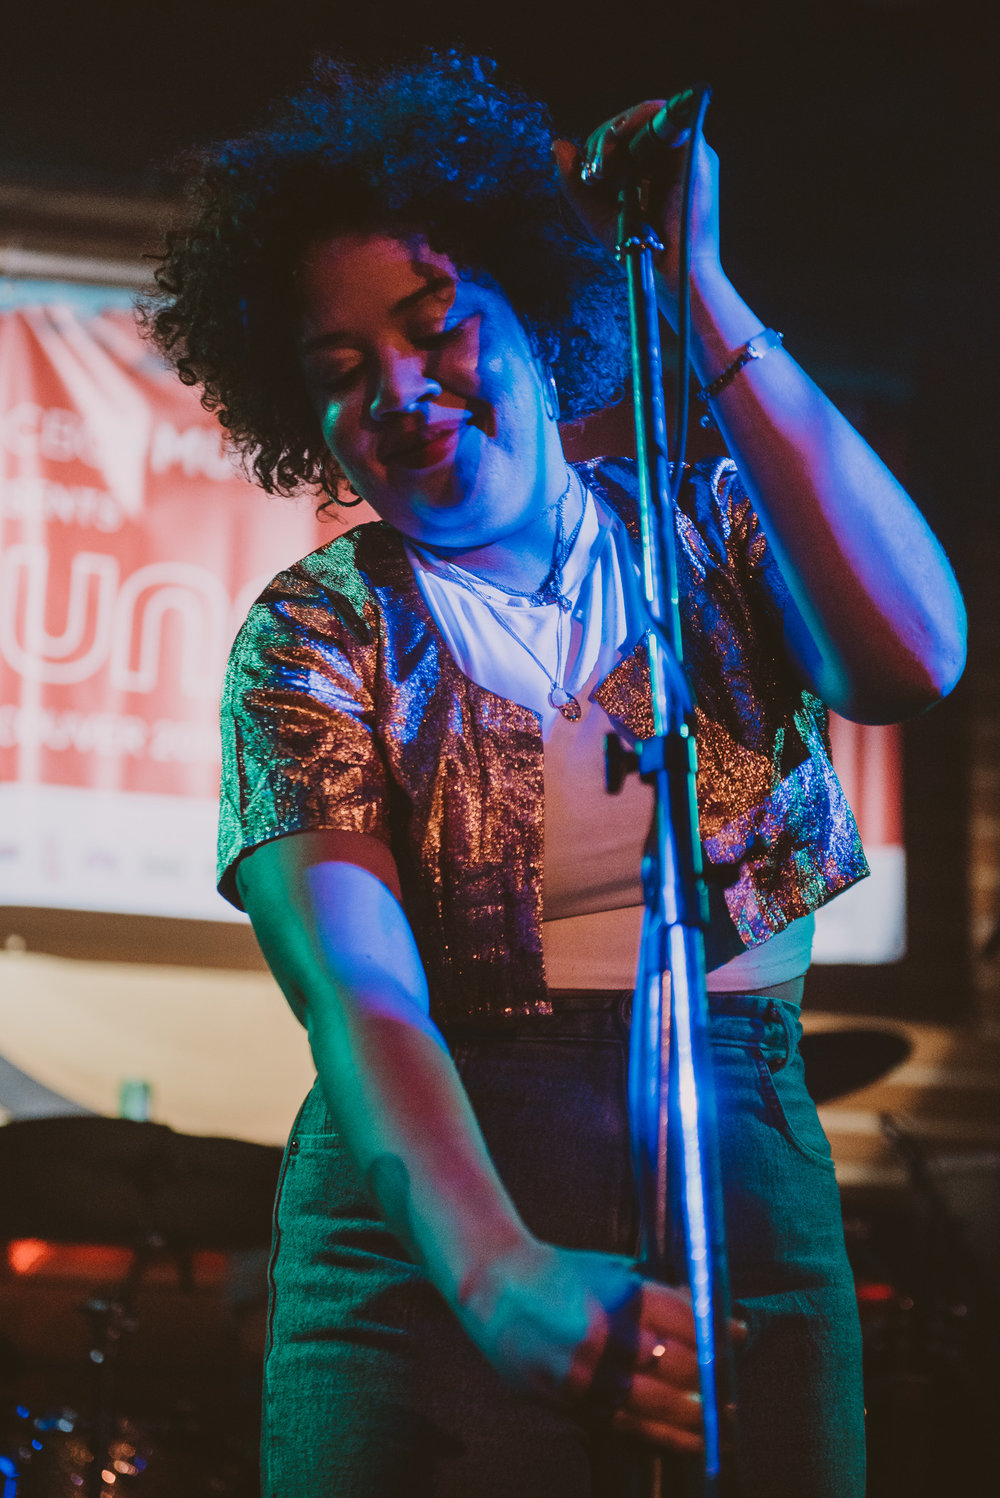 1_Weaves-Fortune_Sound_Club-Timothy_Nguyen-20180323 (2 of 13).jpg